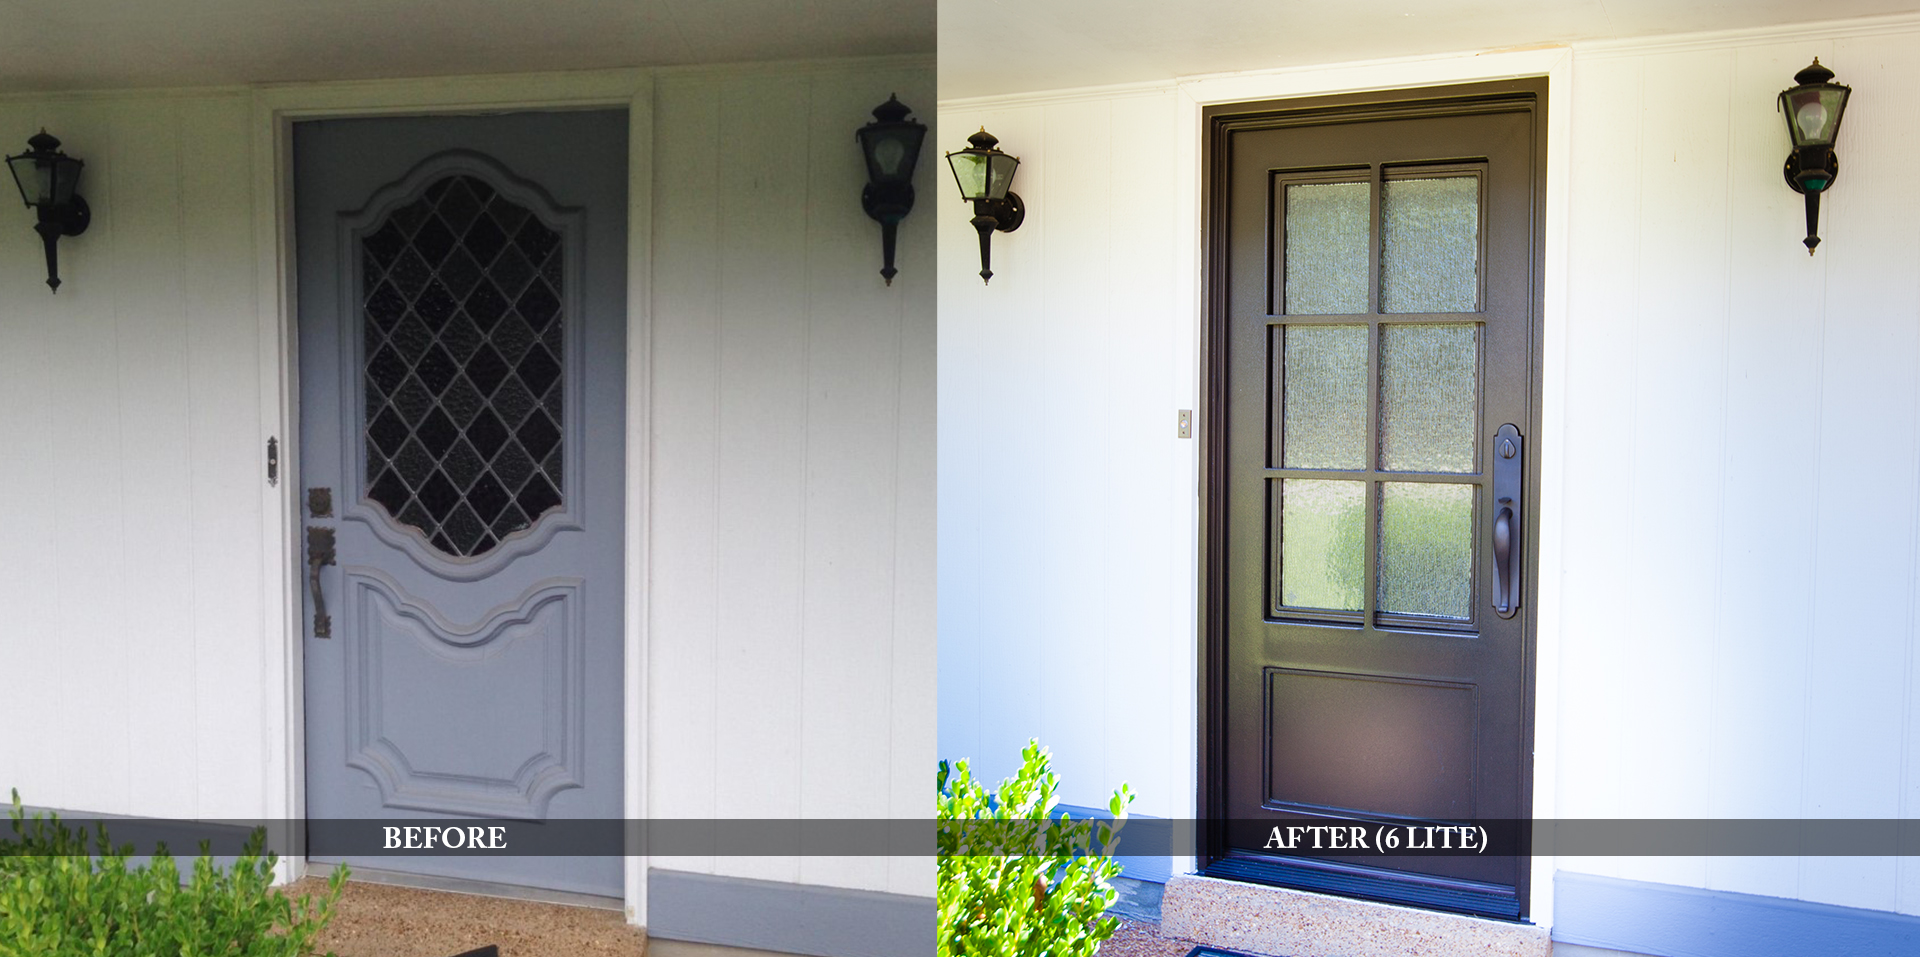 Contemporary residential entry doors before and after comparison